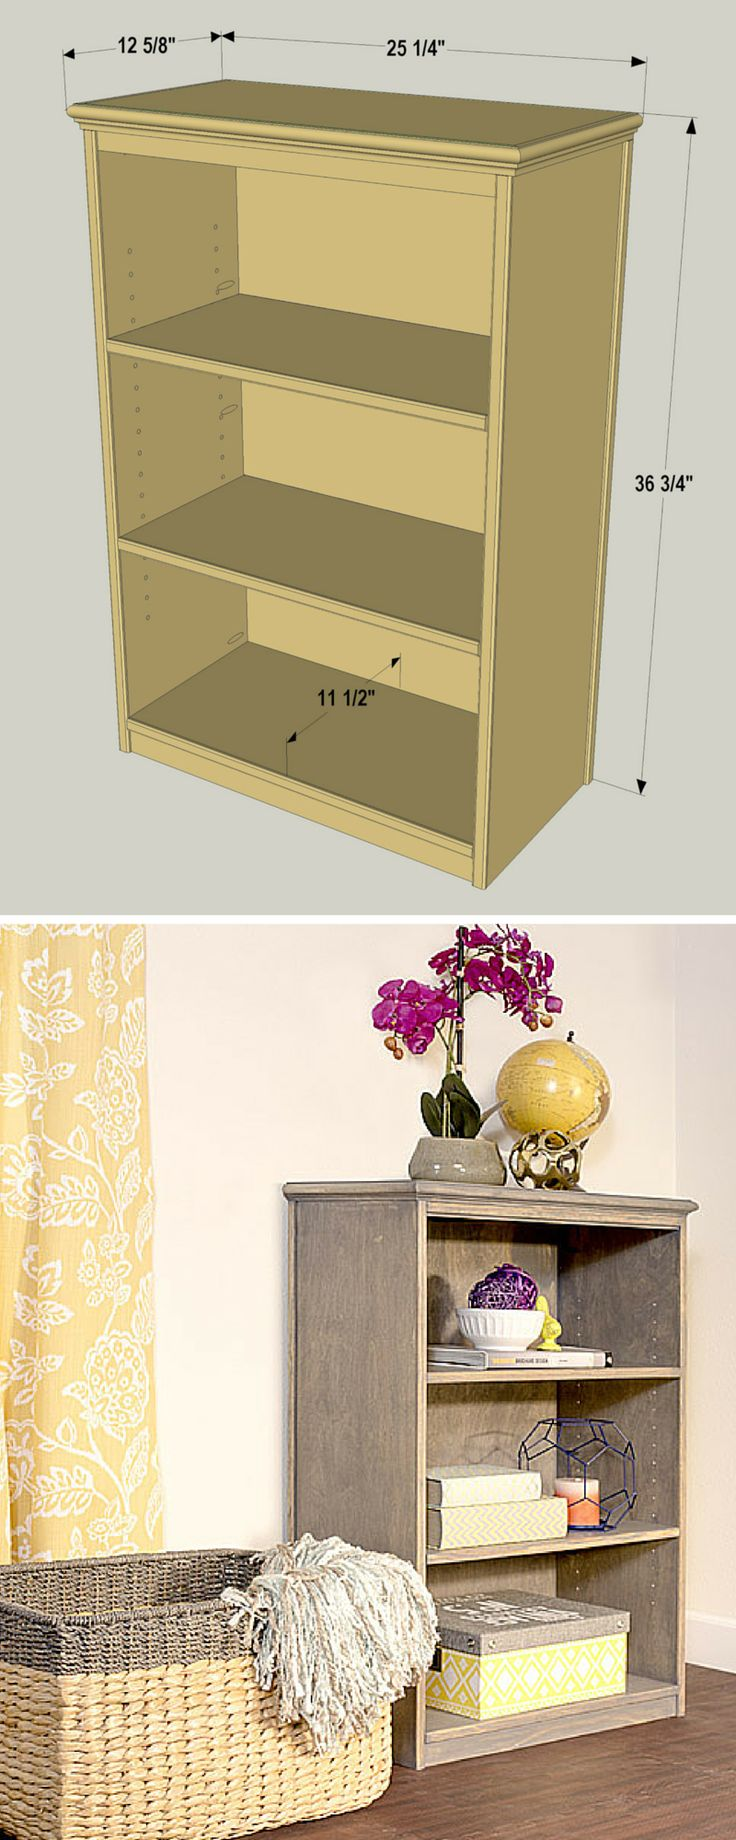 479 best images about diy for around the house yard on for Diy basic bookshelf